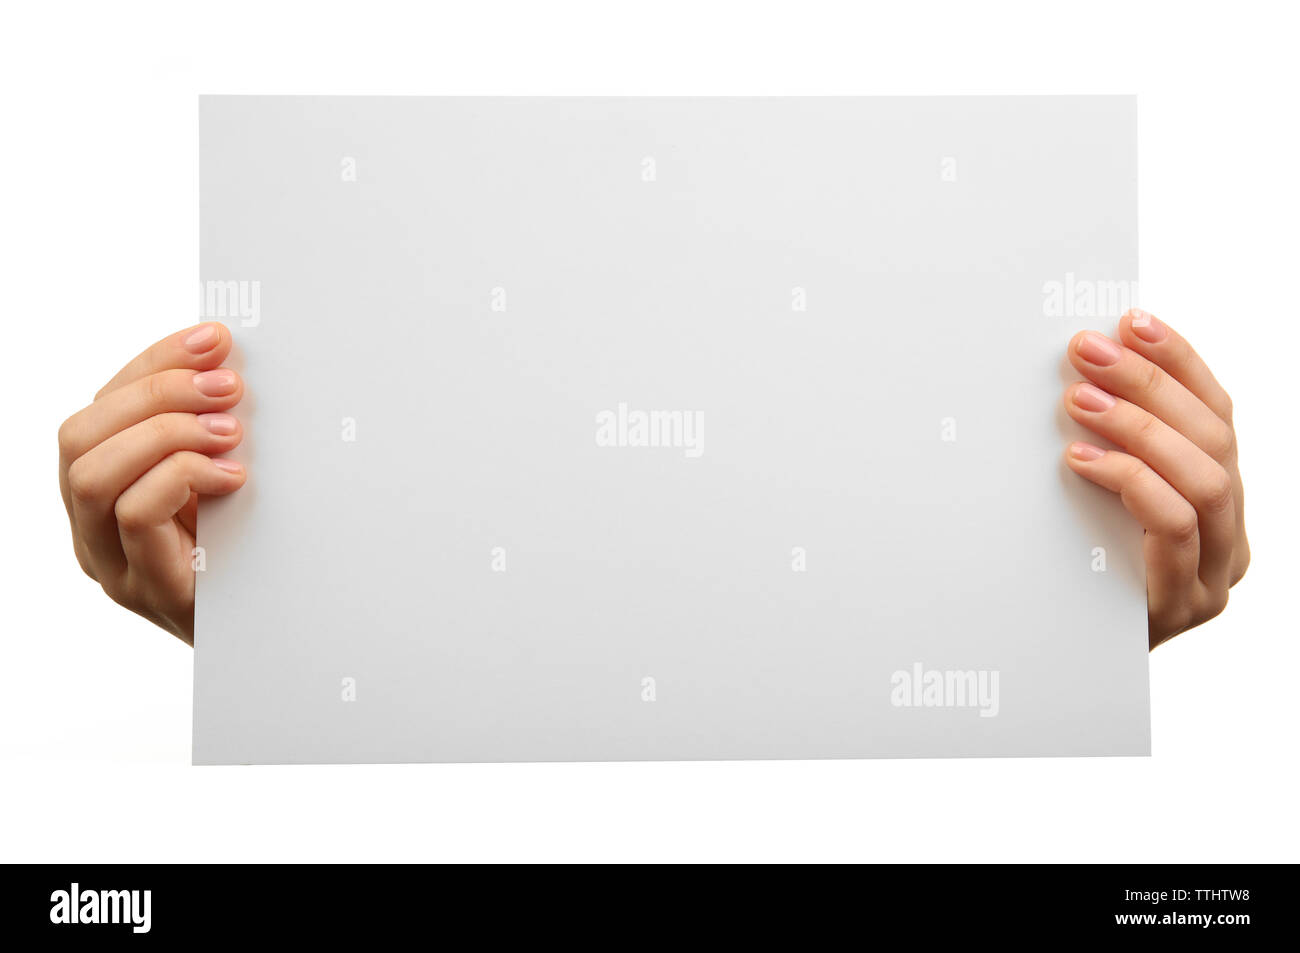 Female hands holding blank sheet of paper isolated on white - Stock Image